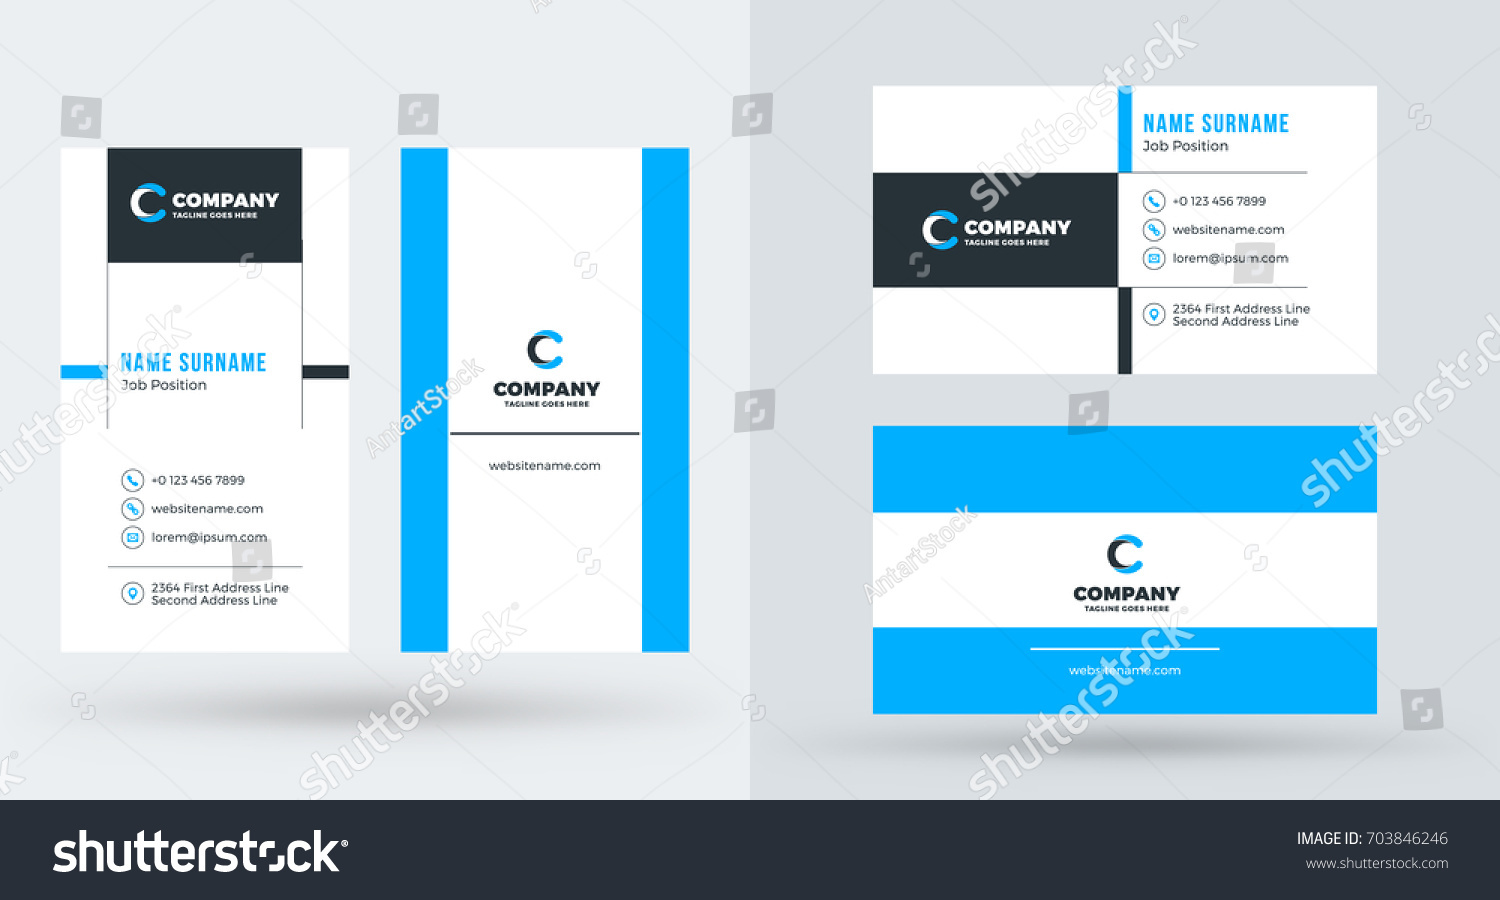 Doublesided creative business card template portrait stock vector double sided creative business card template portrait and landscape orientation horizontal and vertical magicingreecefo Image collections